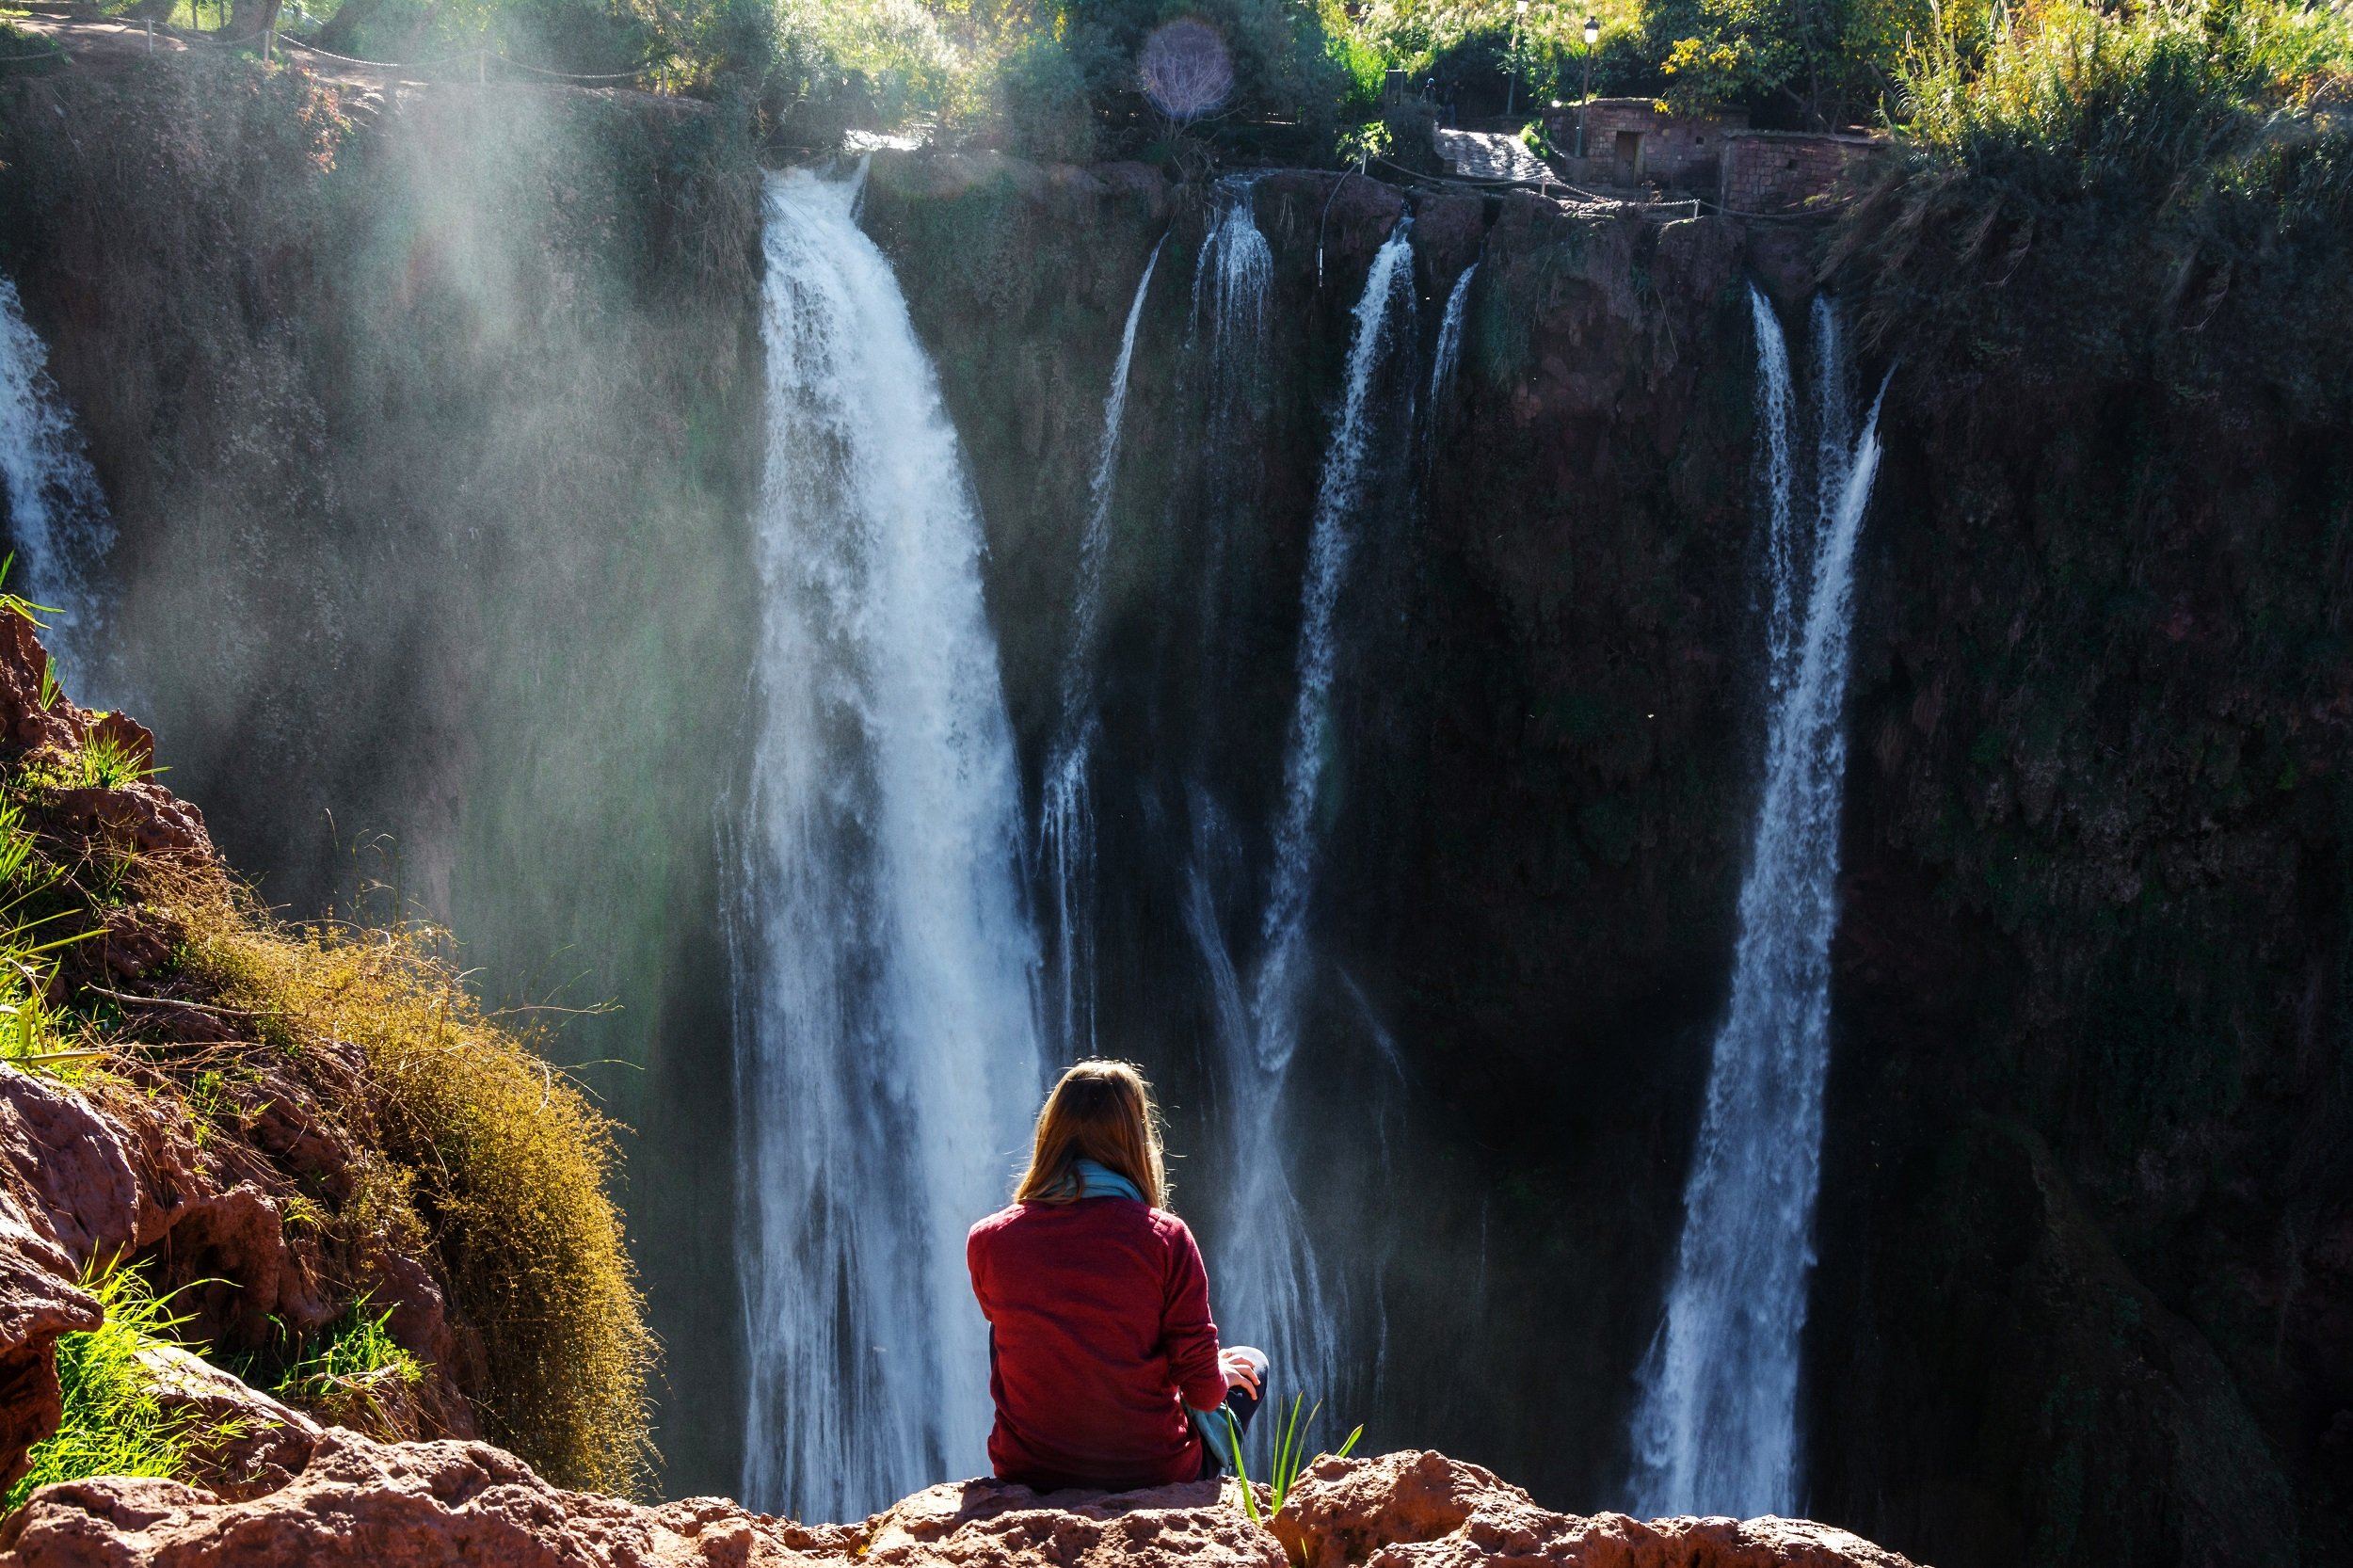 Admire The Beautiful Views Of The Waterfalls On The Ouzoud Waterfalls Tour From Marrakesh